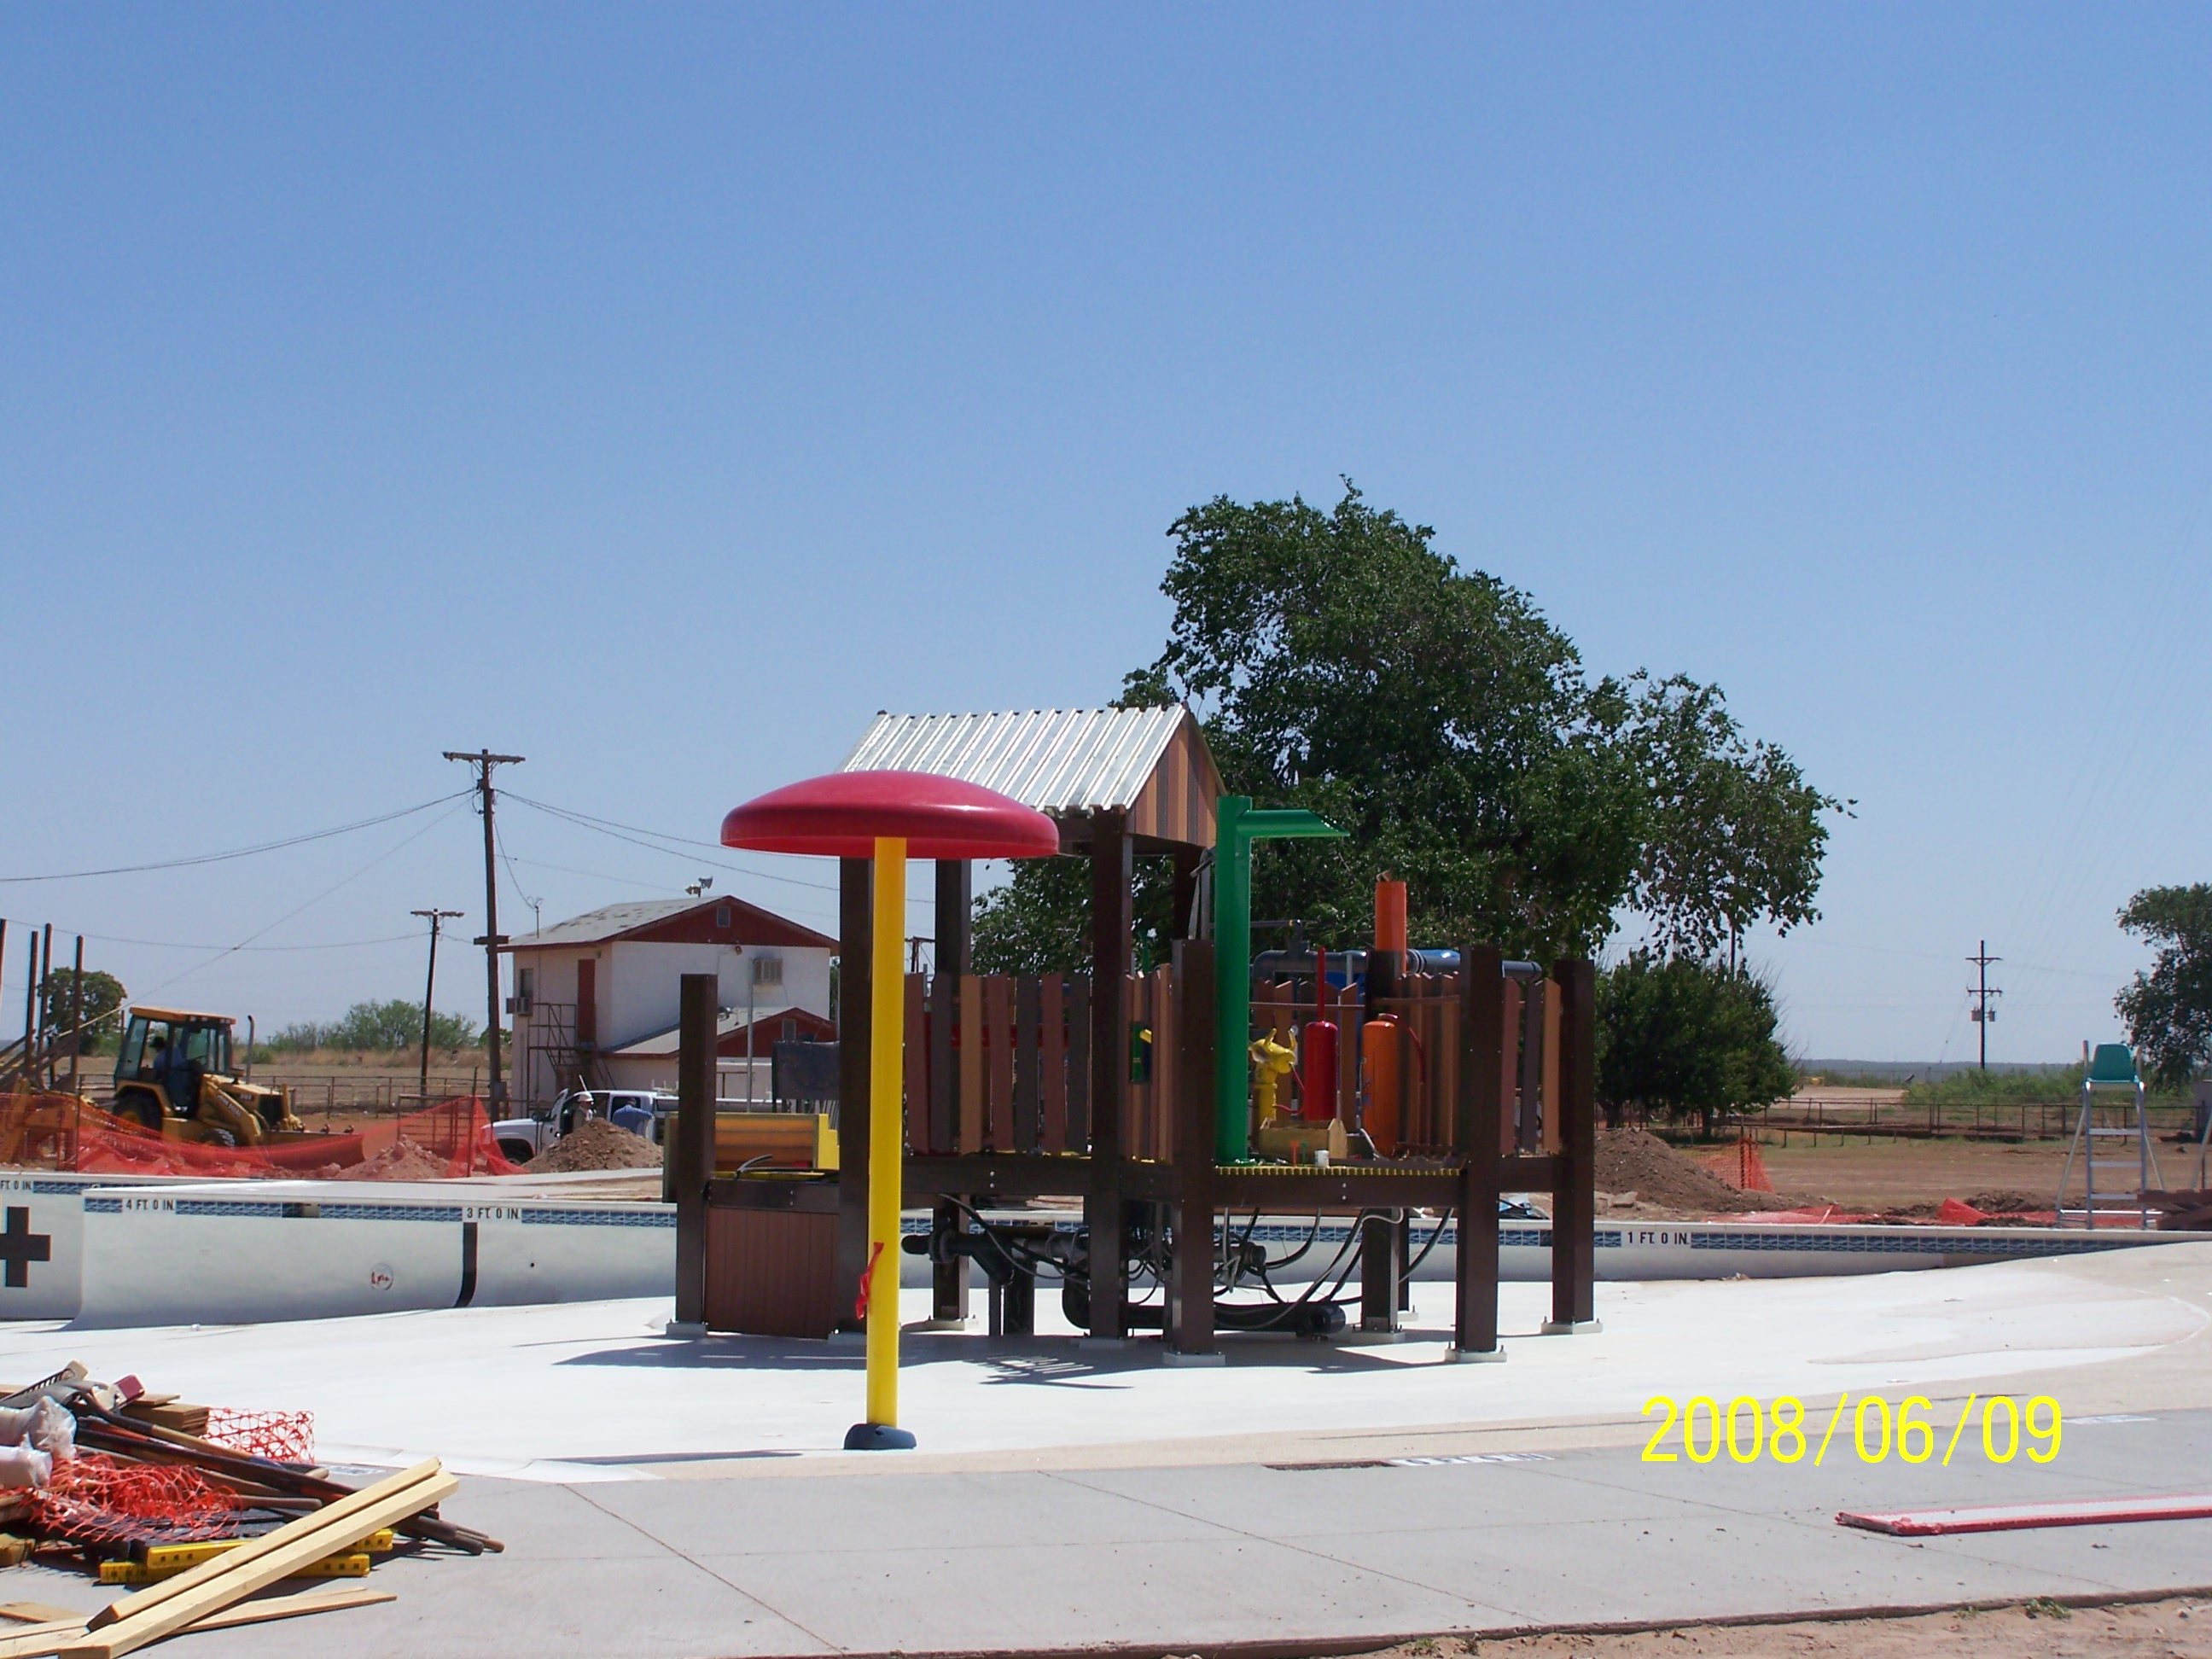 Construction of the Pool Playground